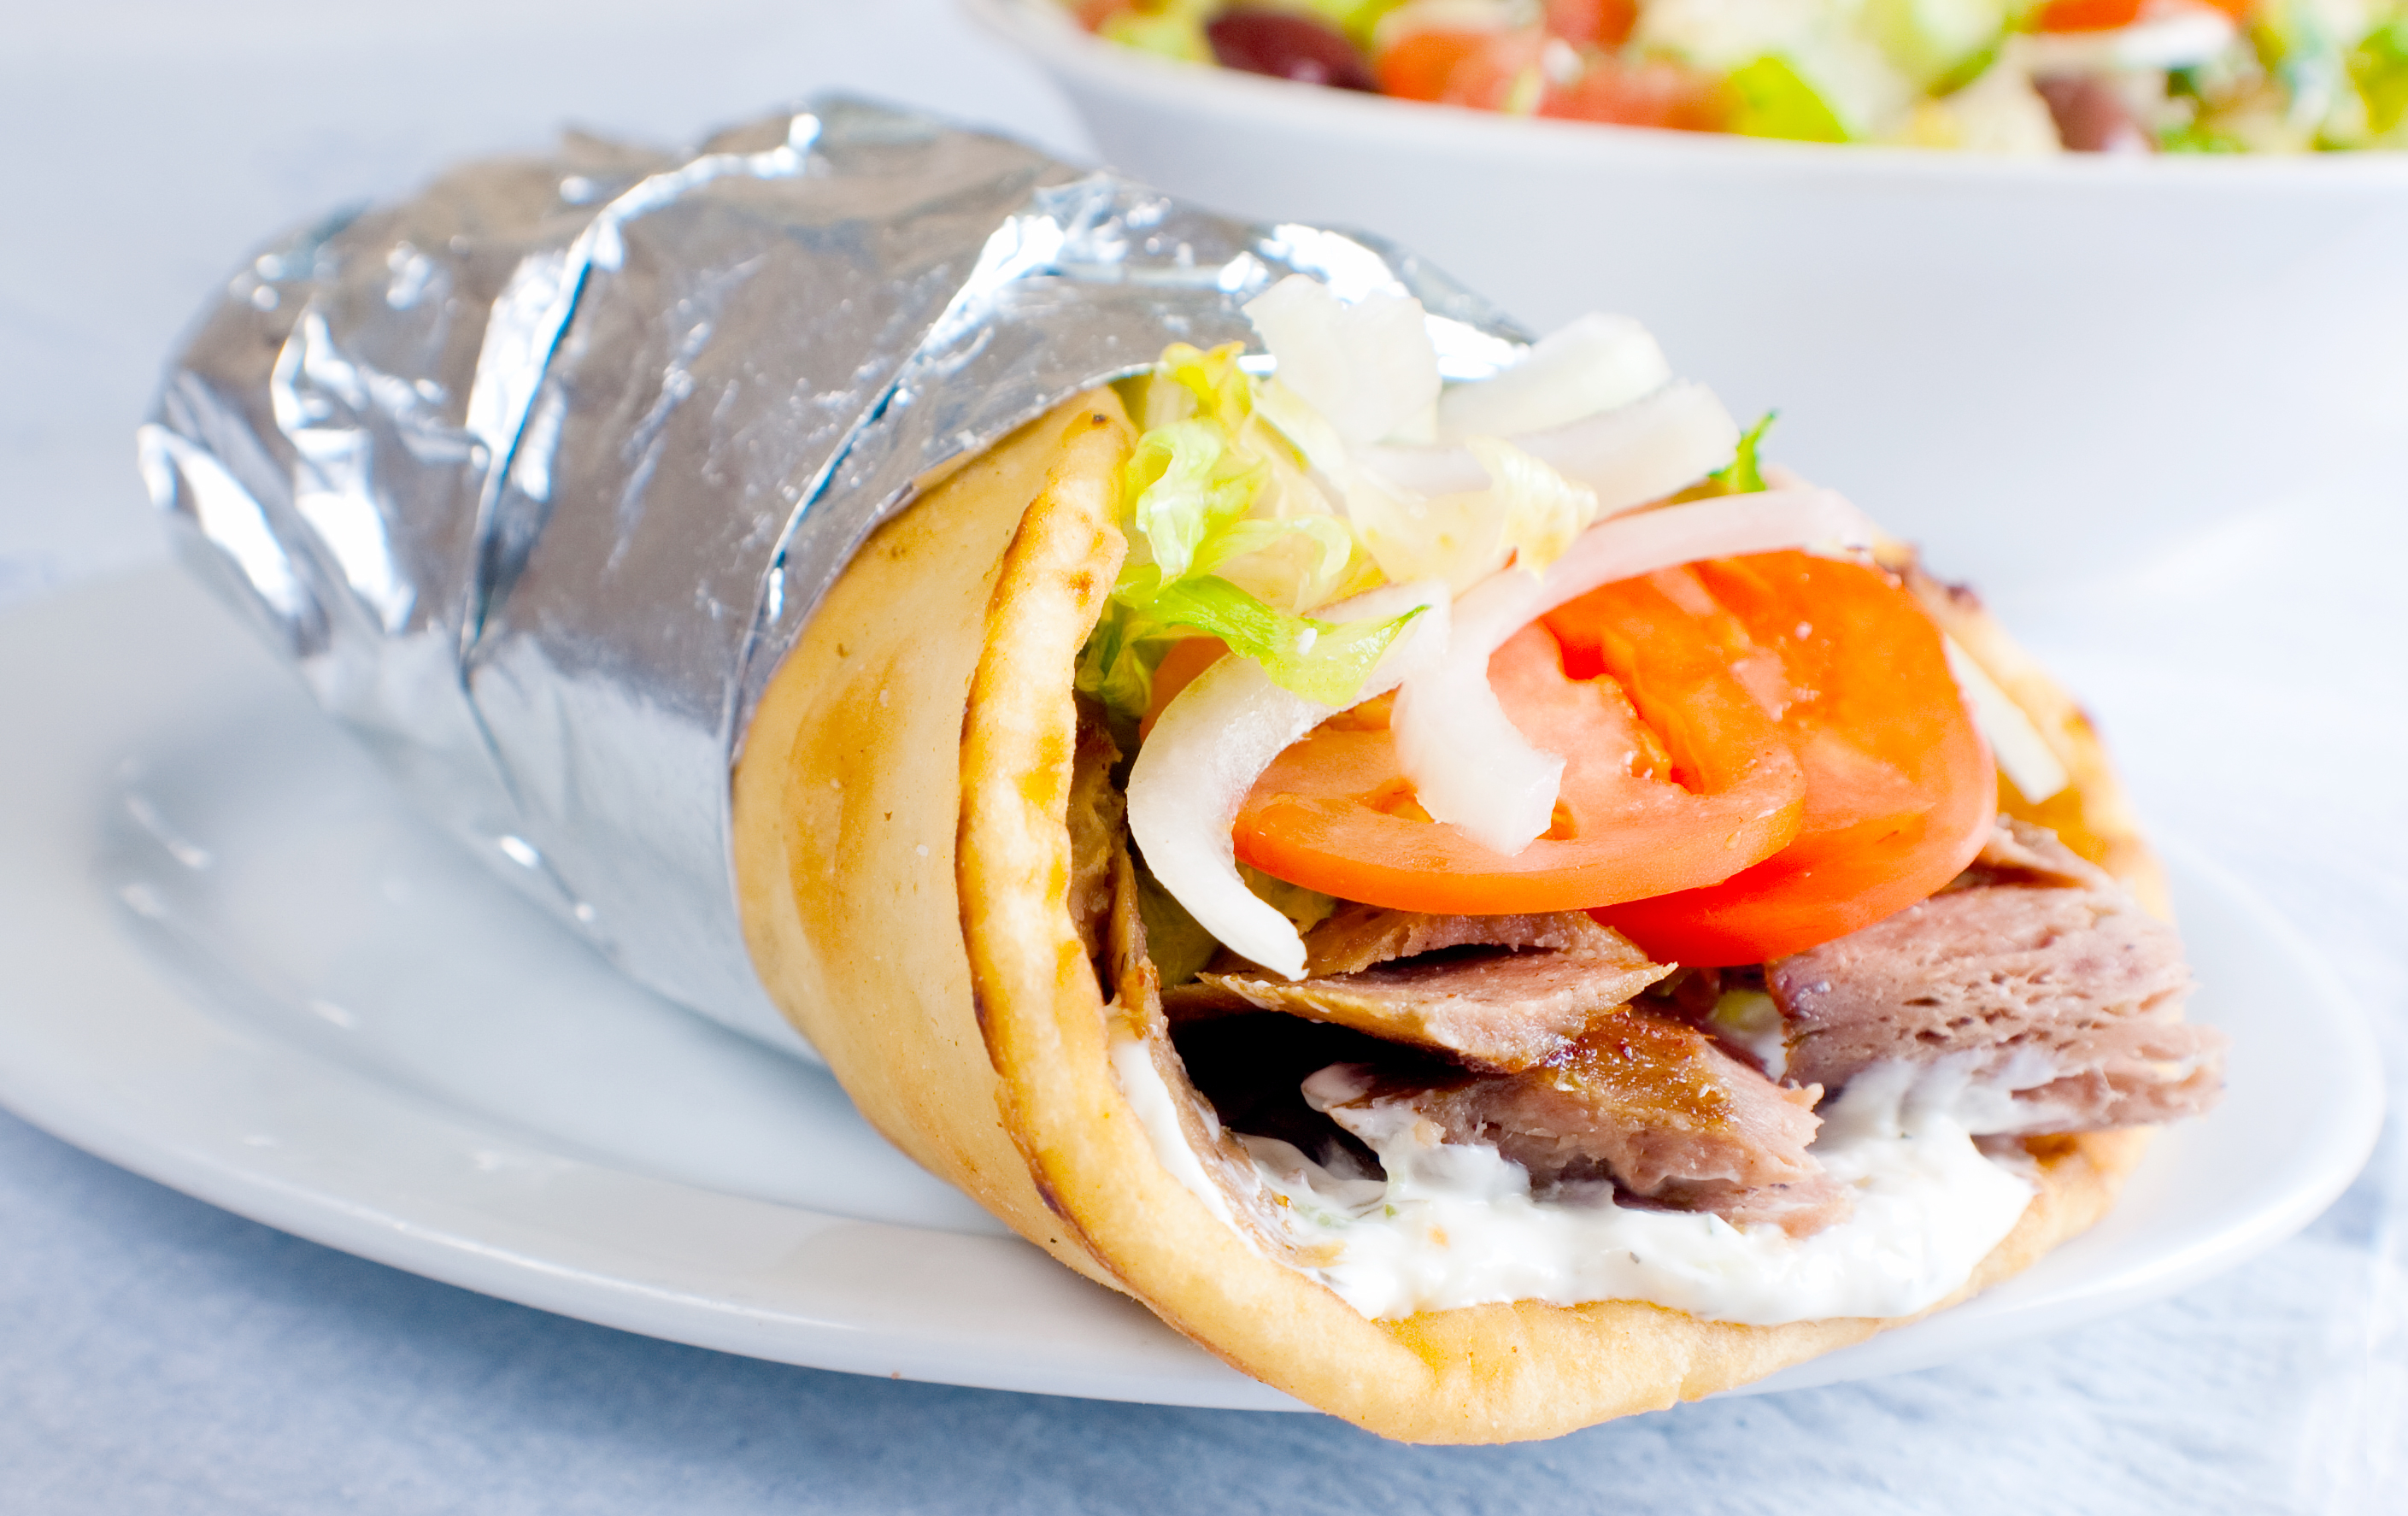 Its greek to me holmdel nj coupons